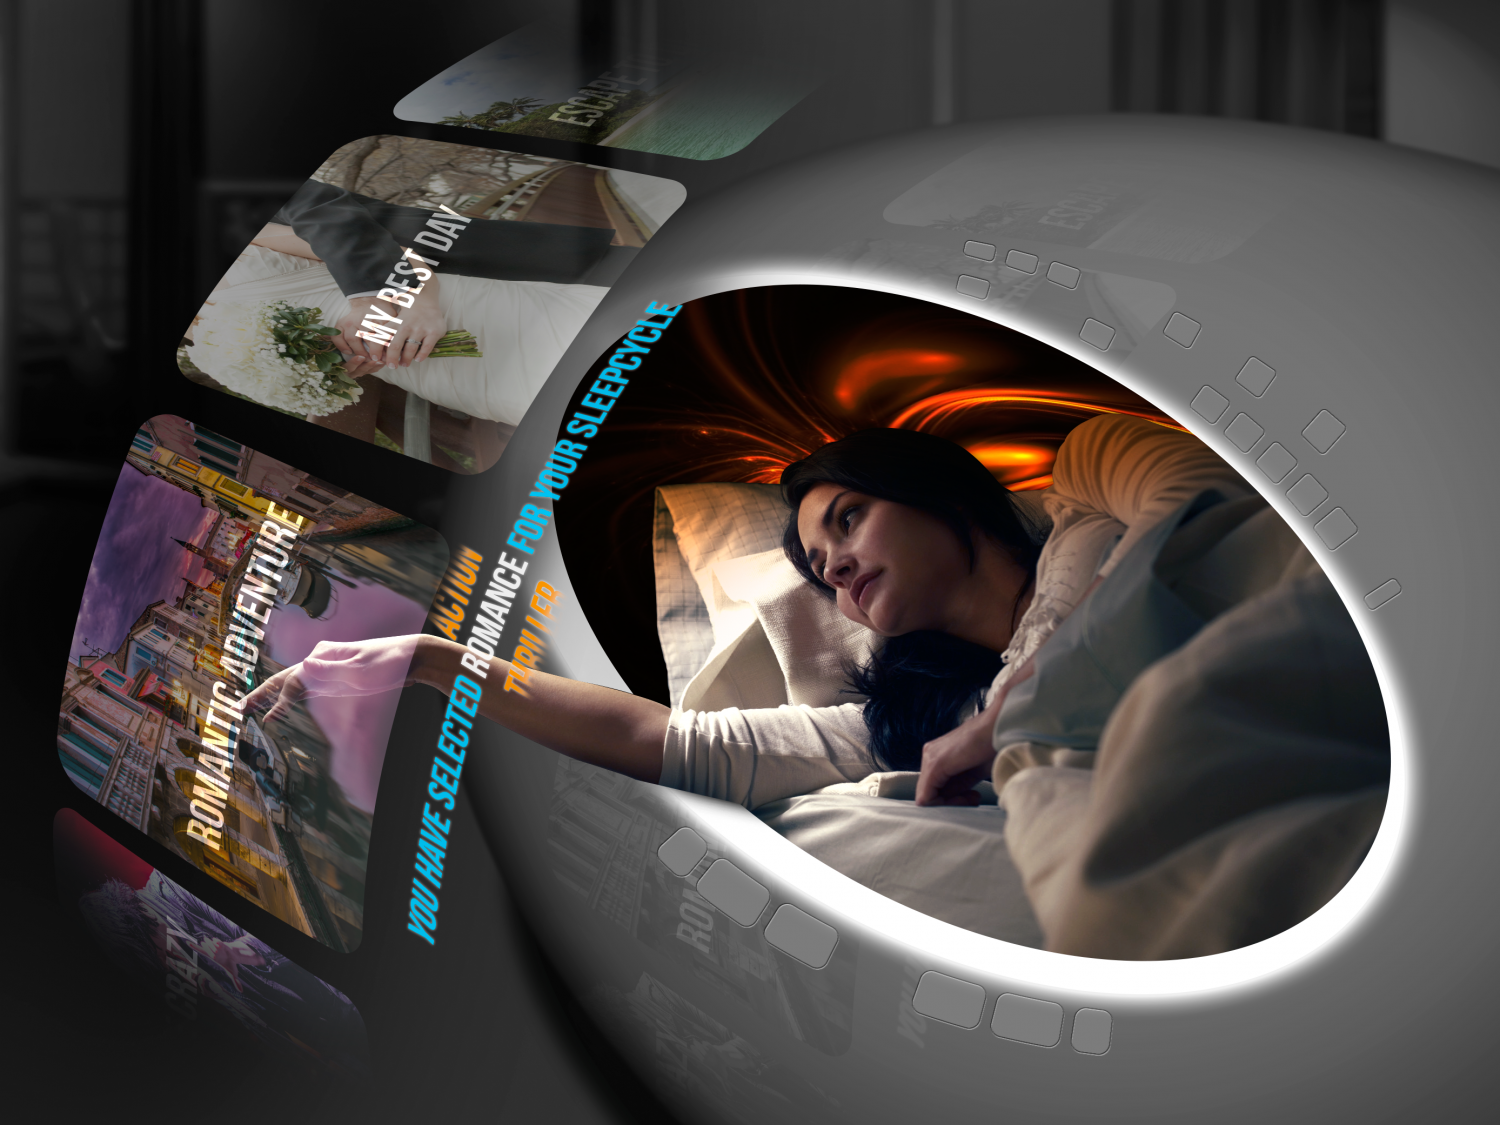 Neuro-dreaming hotel of the future